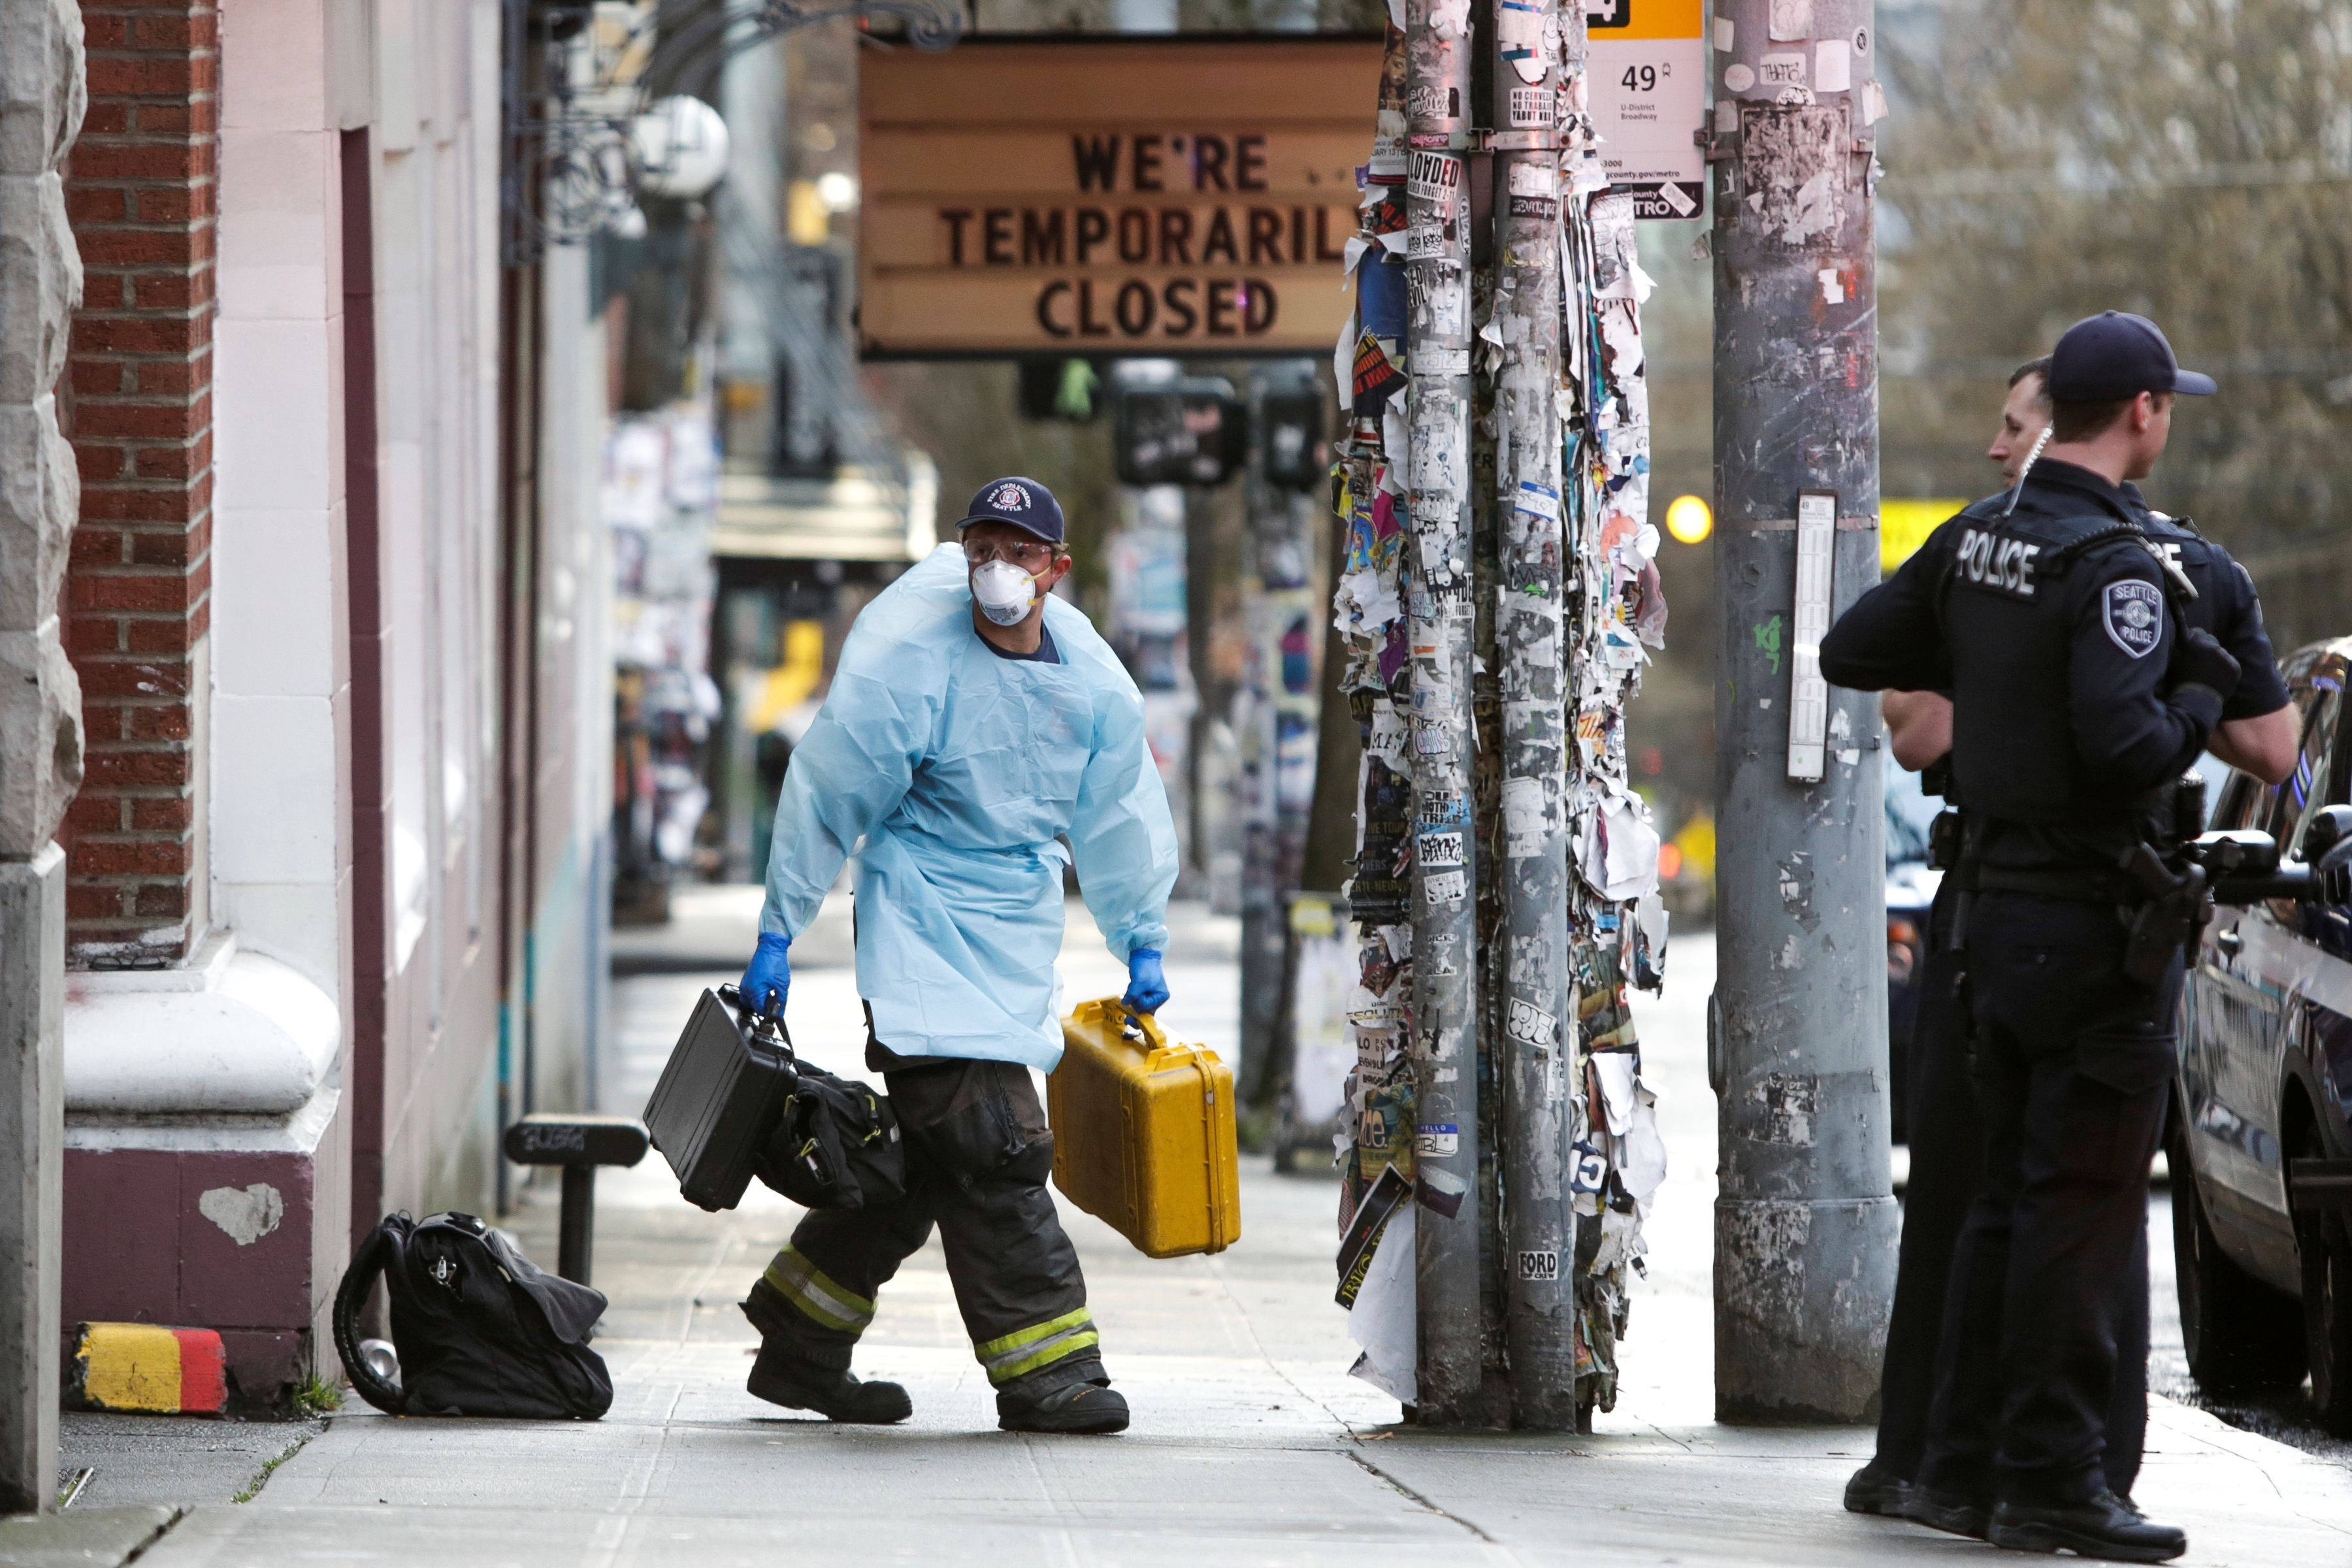 A member of the Seattle Fire Department wears personal protective equipment (PPE) following a medical response as efforts continue to help slow the spread of coronavirus disease (COVID-19) in Seattle, Washington, U.S. March 31, 2020. REUTERS/Jason Redmond